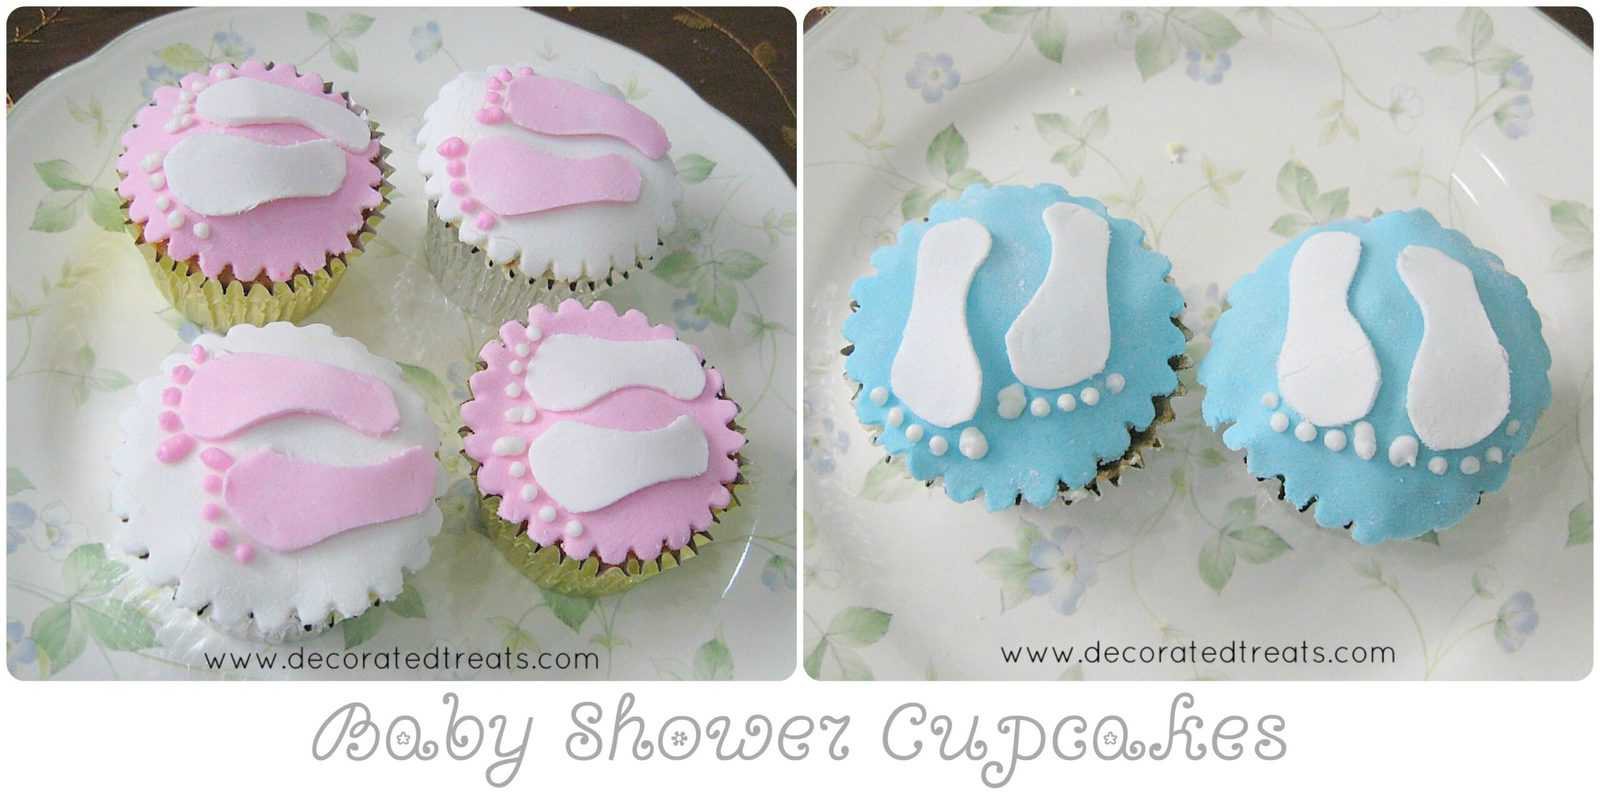 Poster showing 2 sets of baby shower cupcakes. One set is blue with white footprint design while the other set is pink and white.